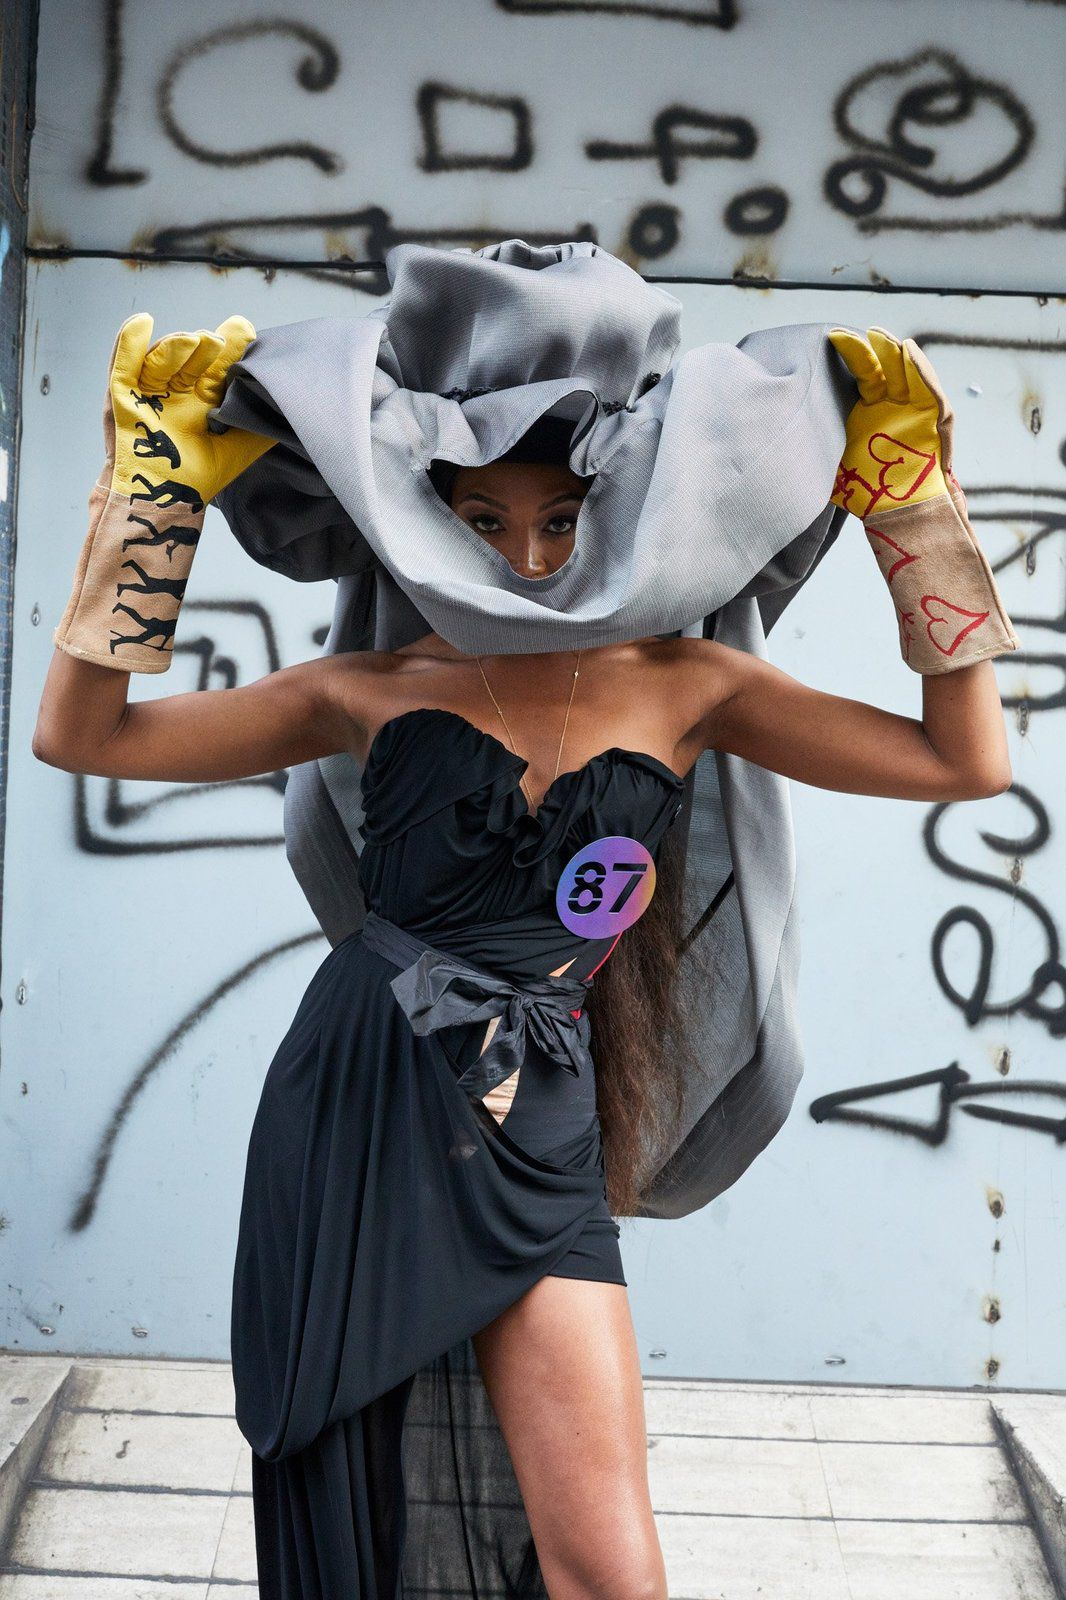 NAOMI CAMPBELL STARS IN VIVIENNE WESTWOOD SPRING 2020 CAMPAIGN FILM